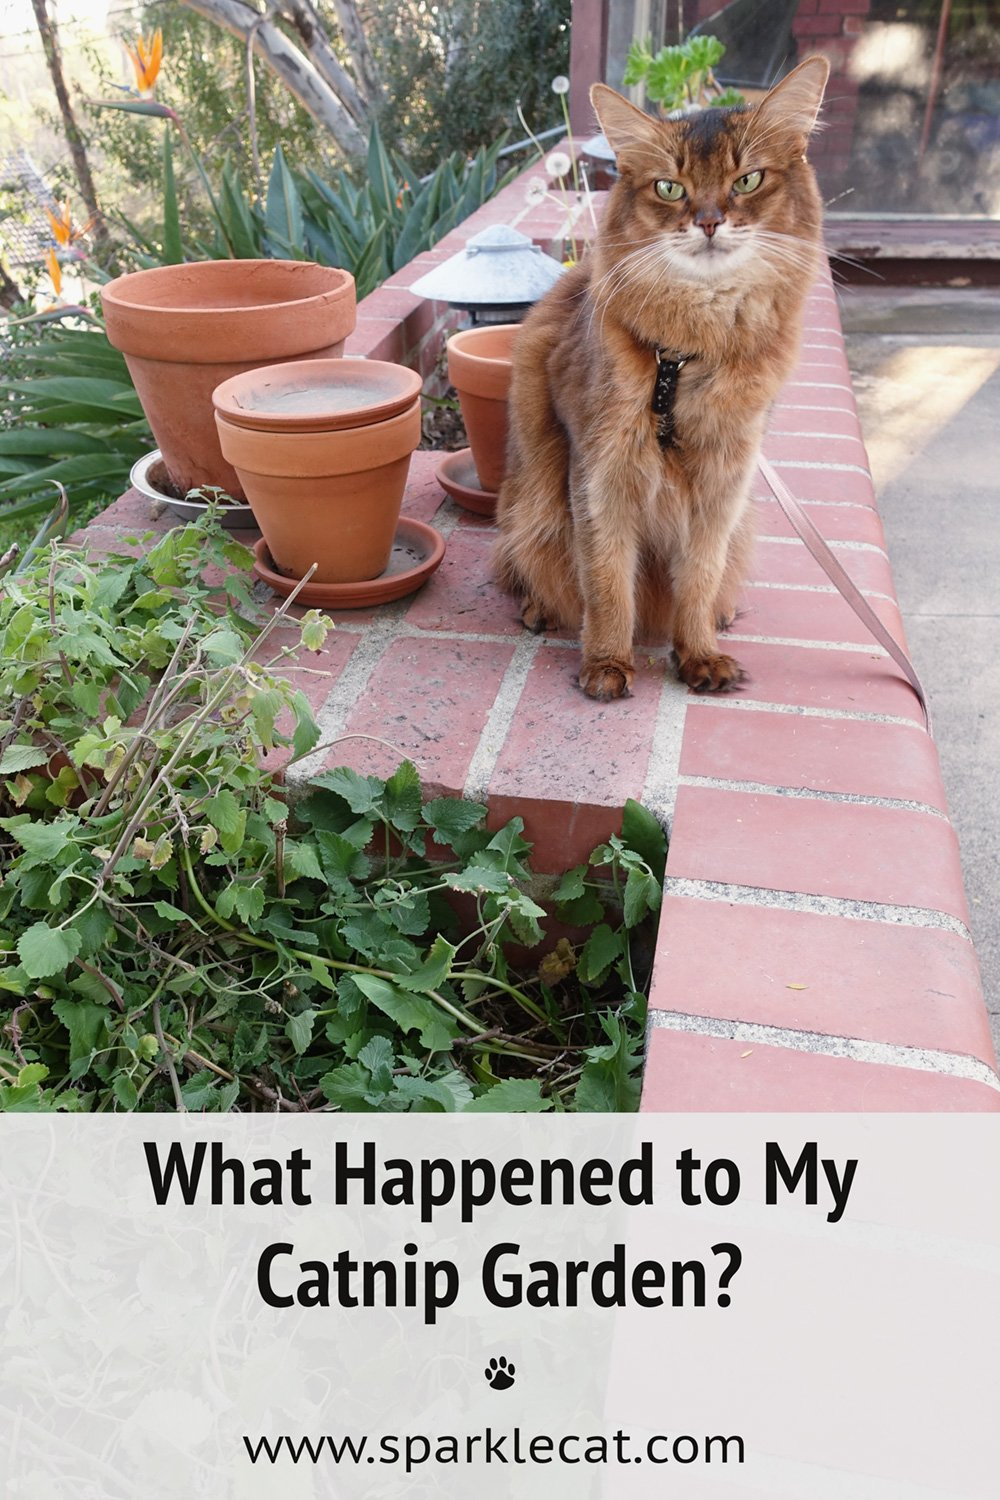 What Happened to My Catnip Garden?